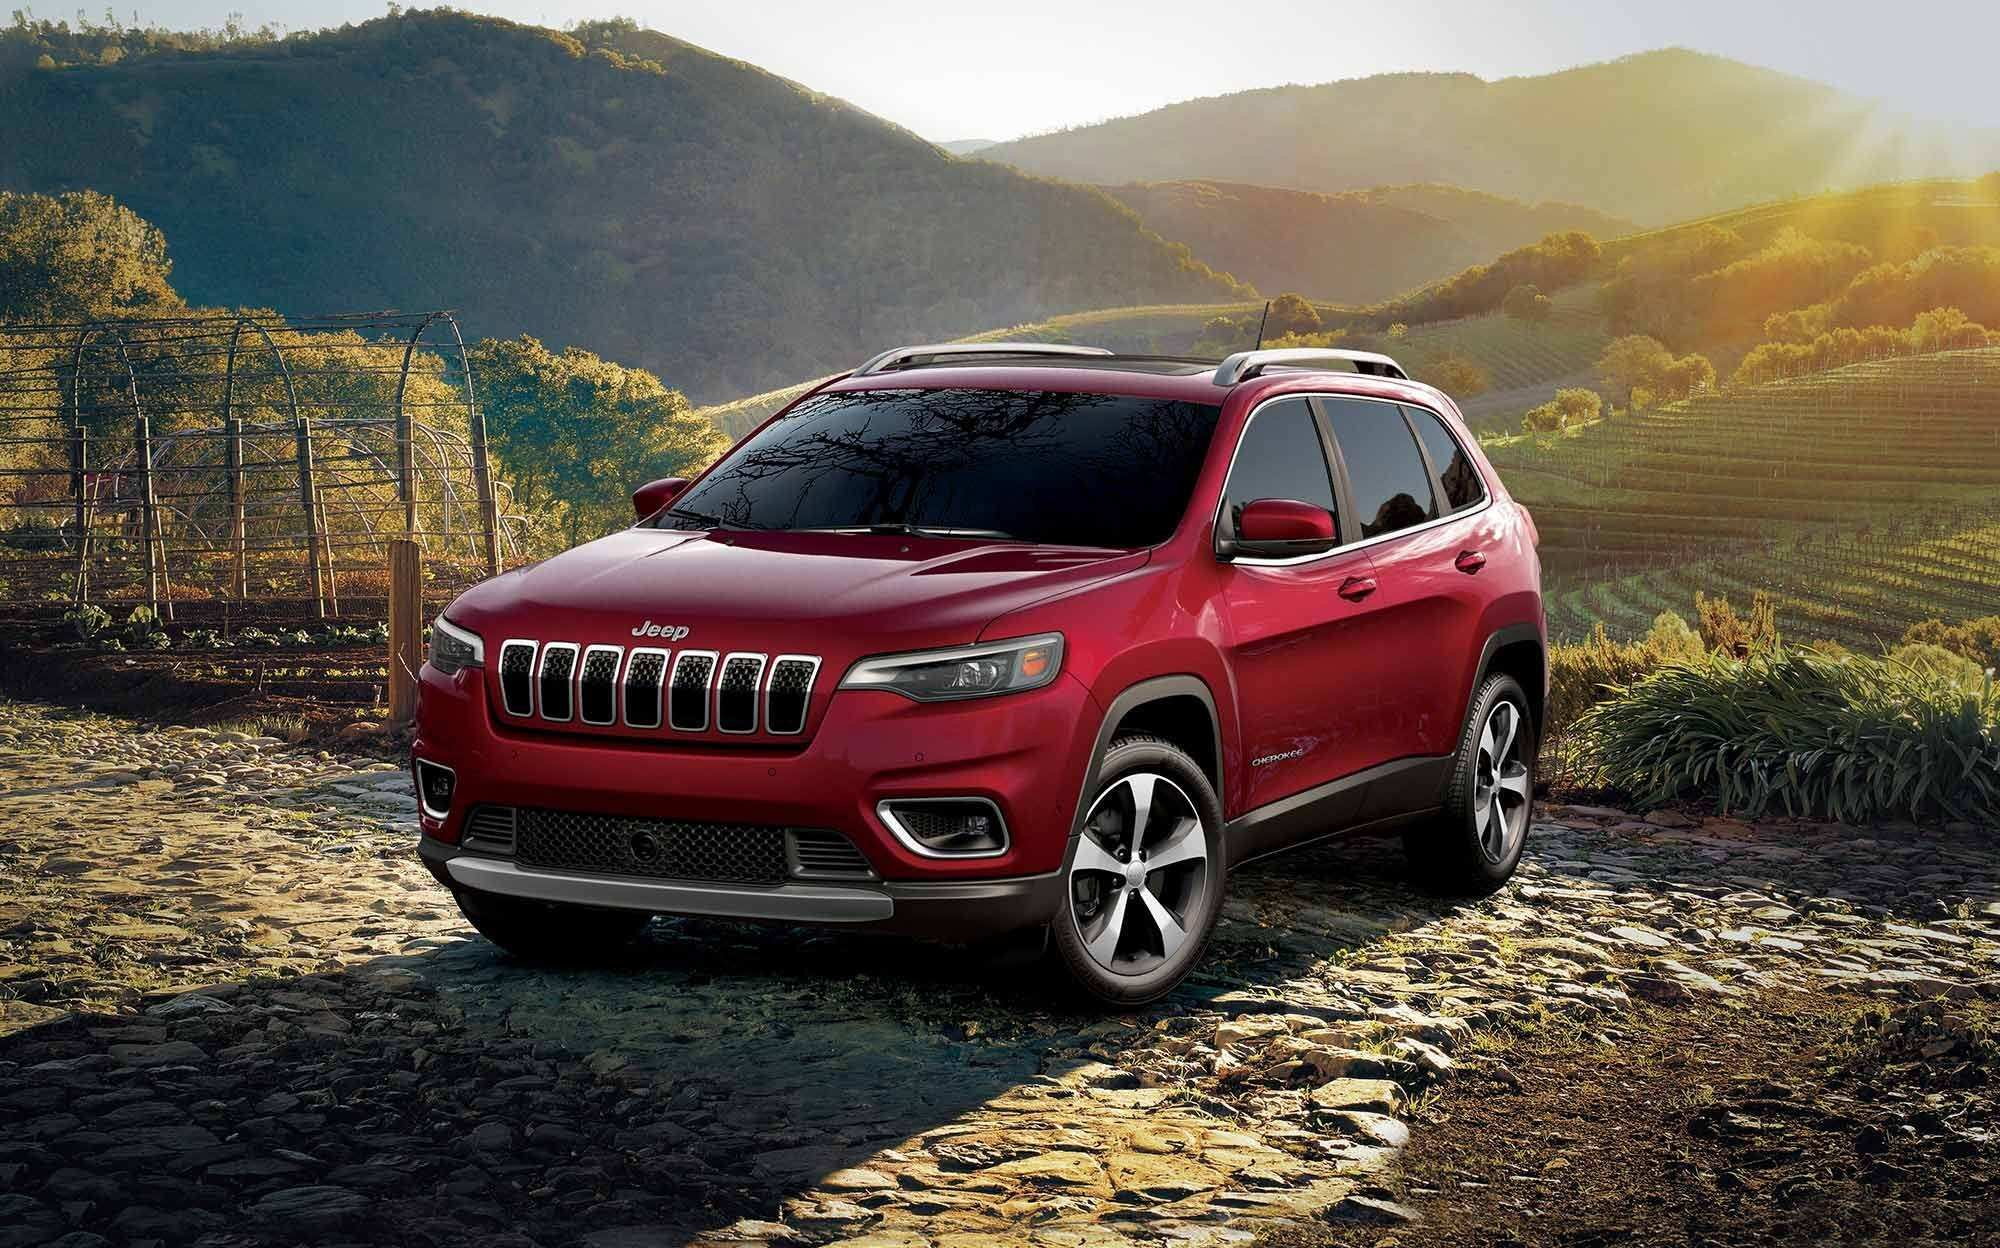 40 New The 2019 Jeep Cherokee Ride Quality Release Date Price And Review Model for The 2019 Jeep Cherokee Ride Quality Release Date Price And Review